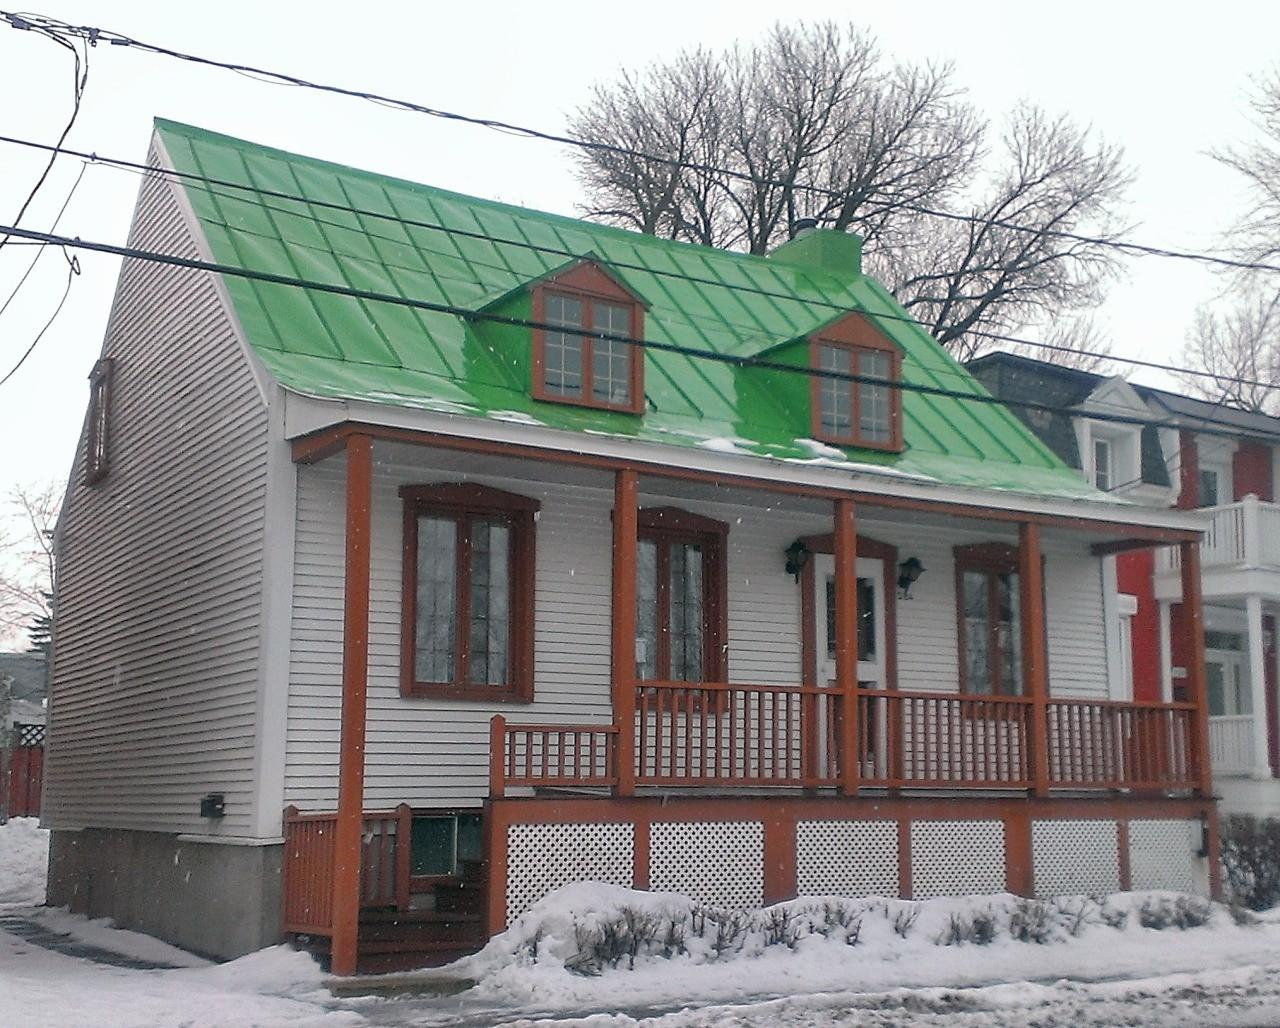 Montreal Architecture Traditional House Green Roof